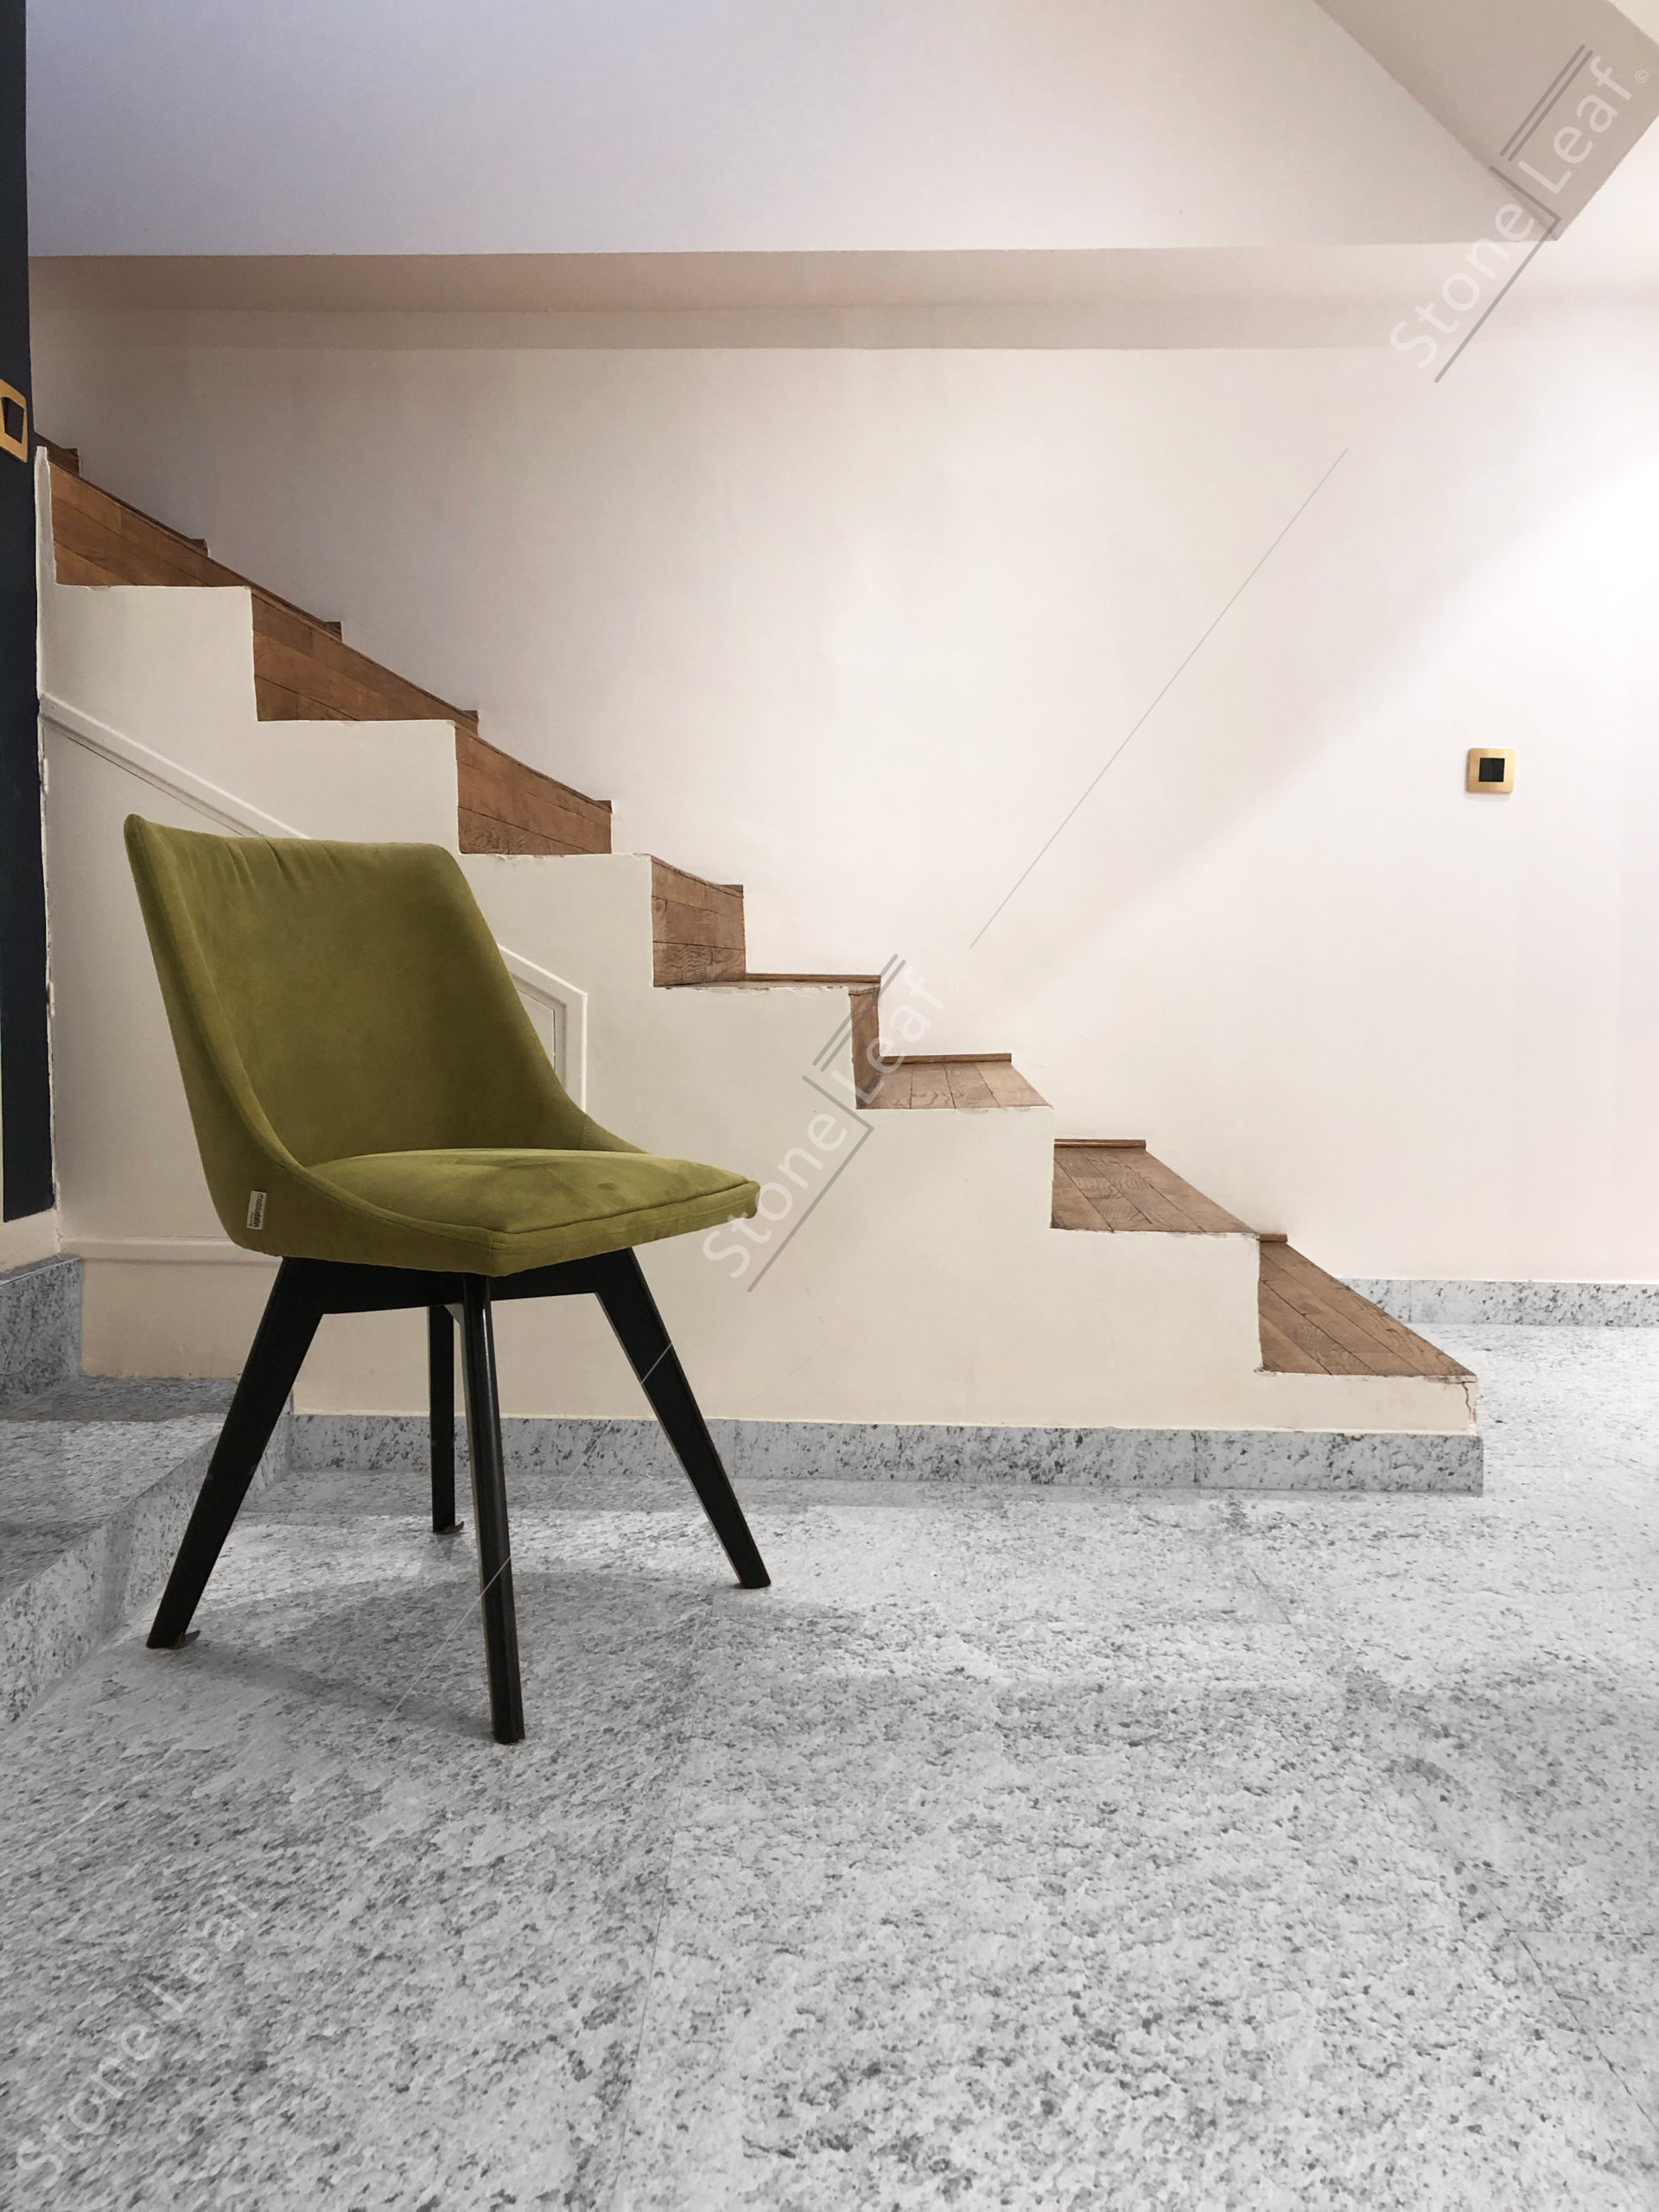 100% natural stone sheet on the floor